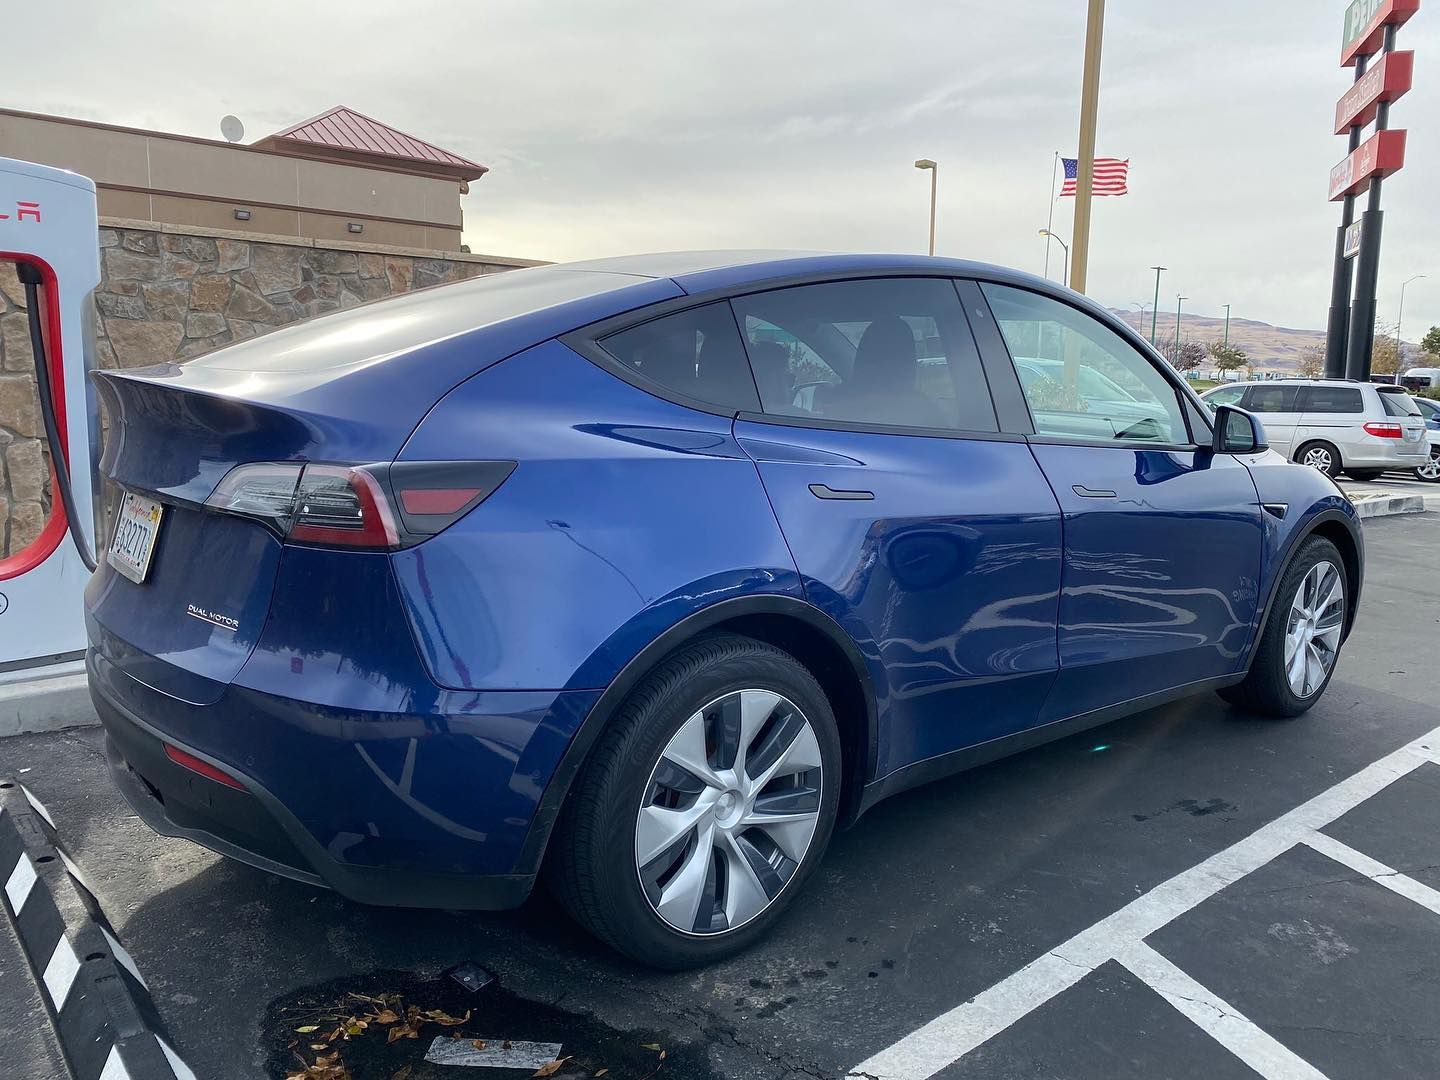 Model Y Has Been Spotted Again Follow Teslavibes For More Awesome Tesla Pictures And News Tesla Model Tesla Car Tesla Model X